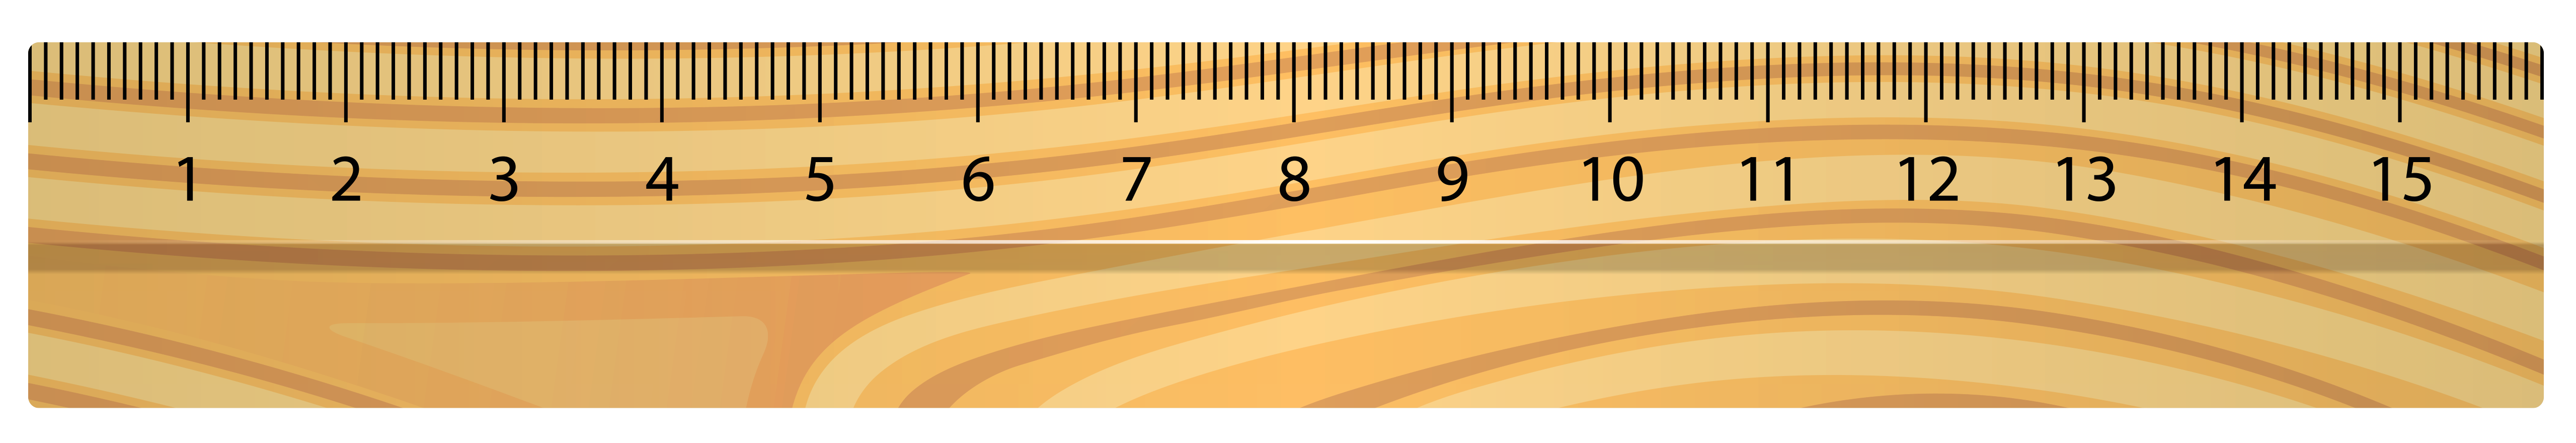 Wood vector png. Wooden ruler transparent clipart